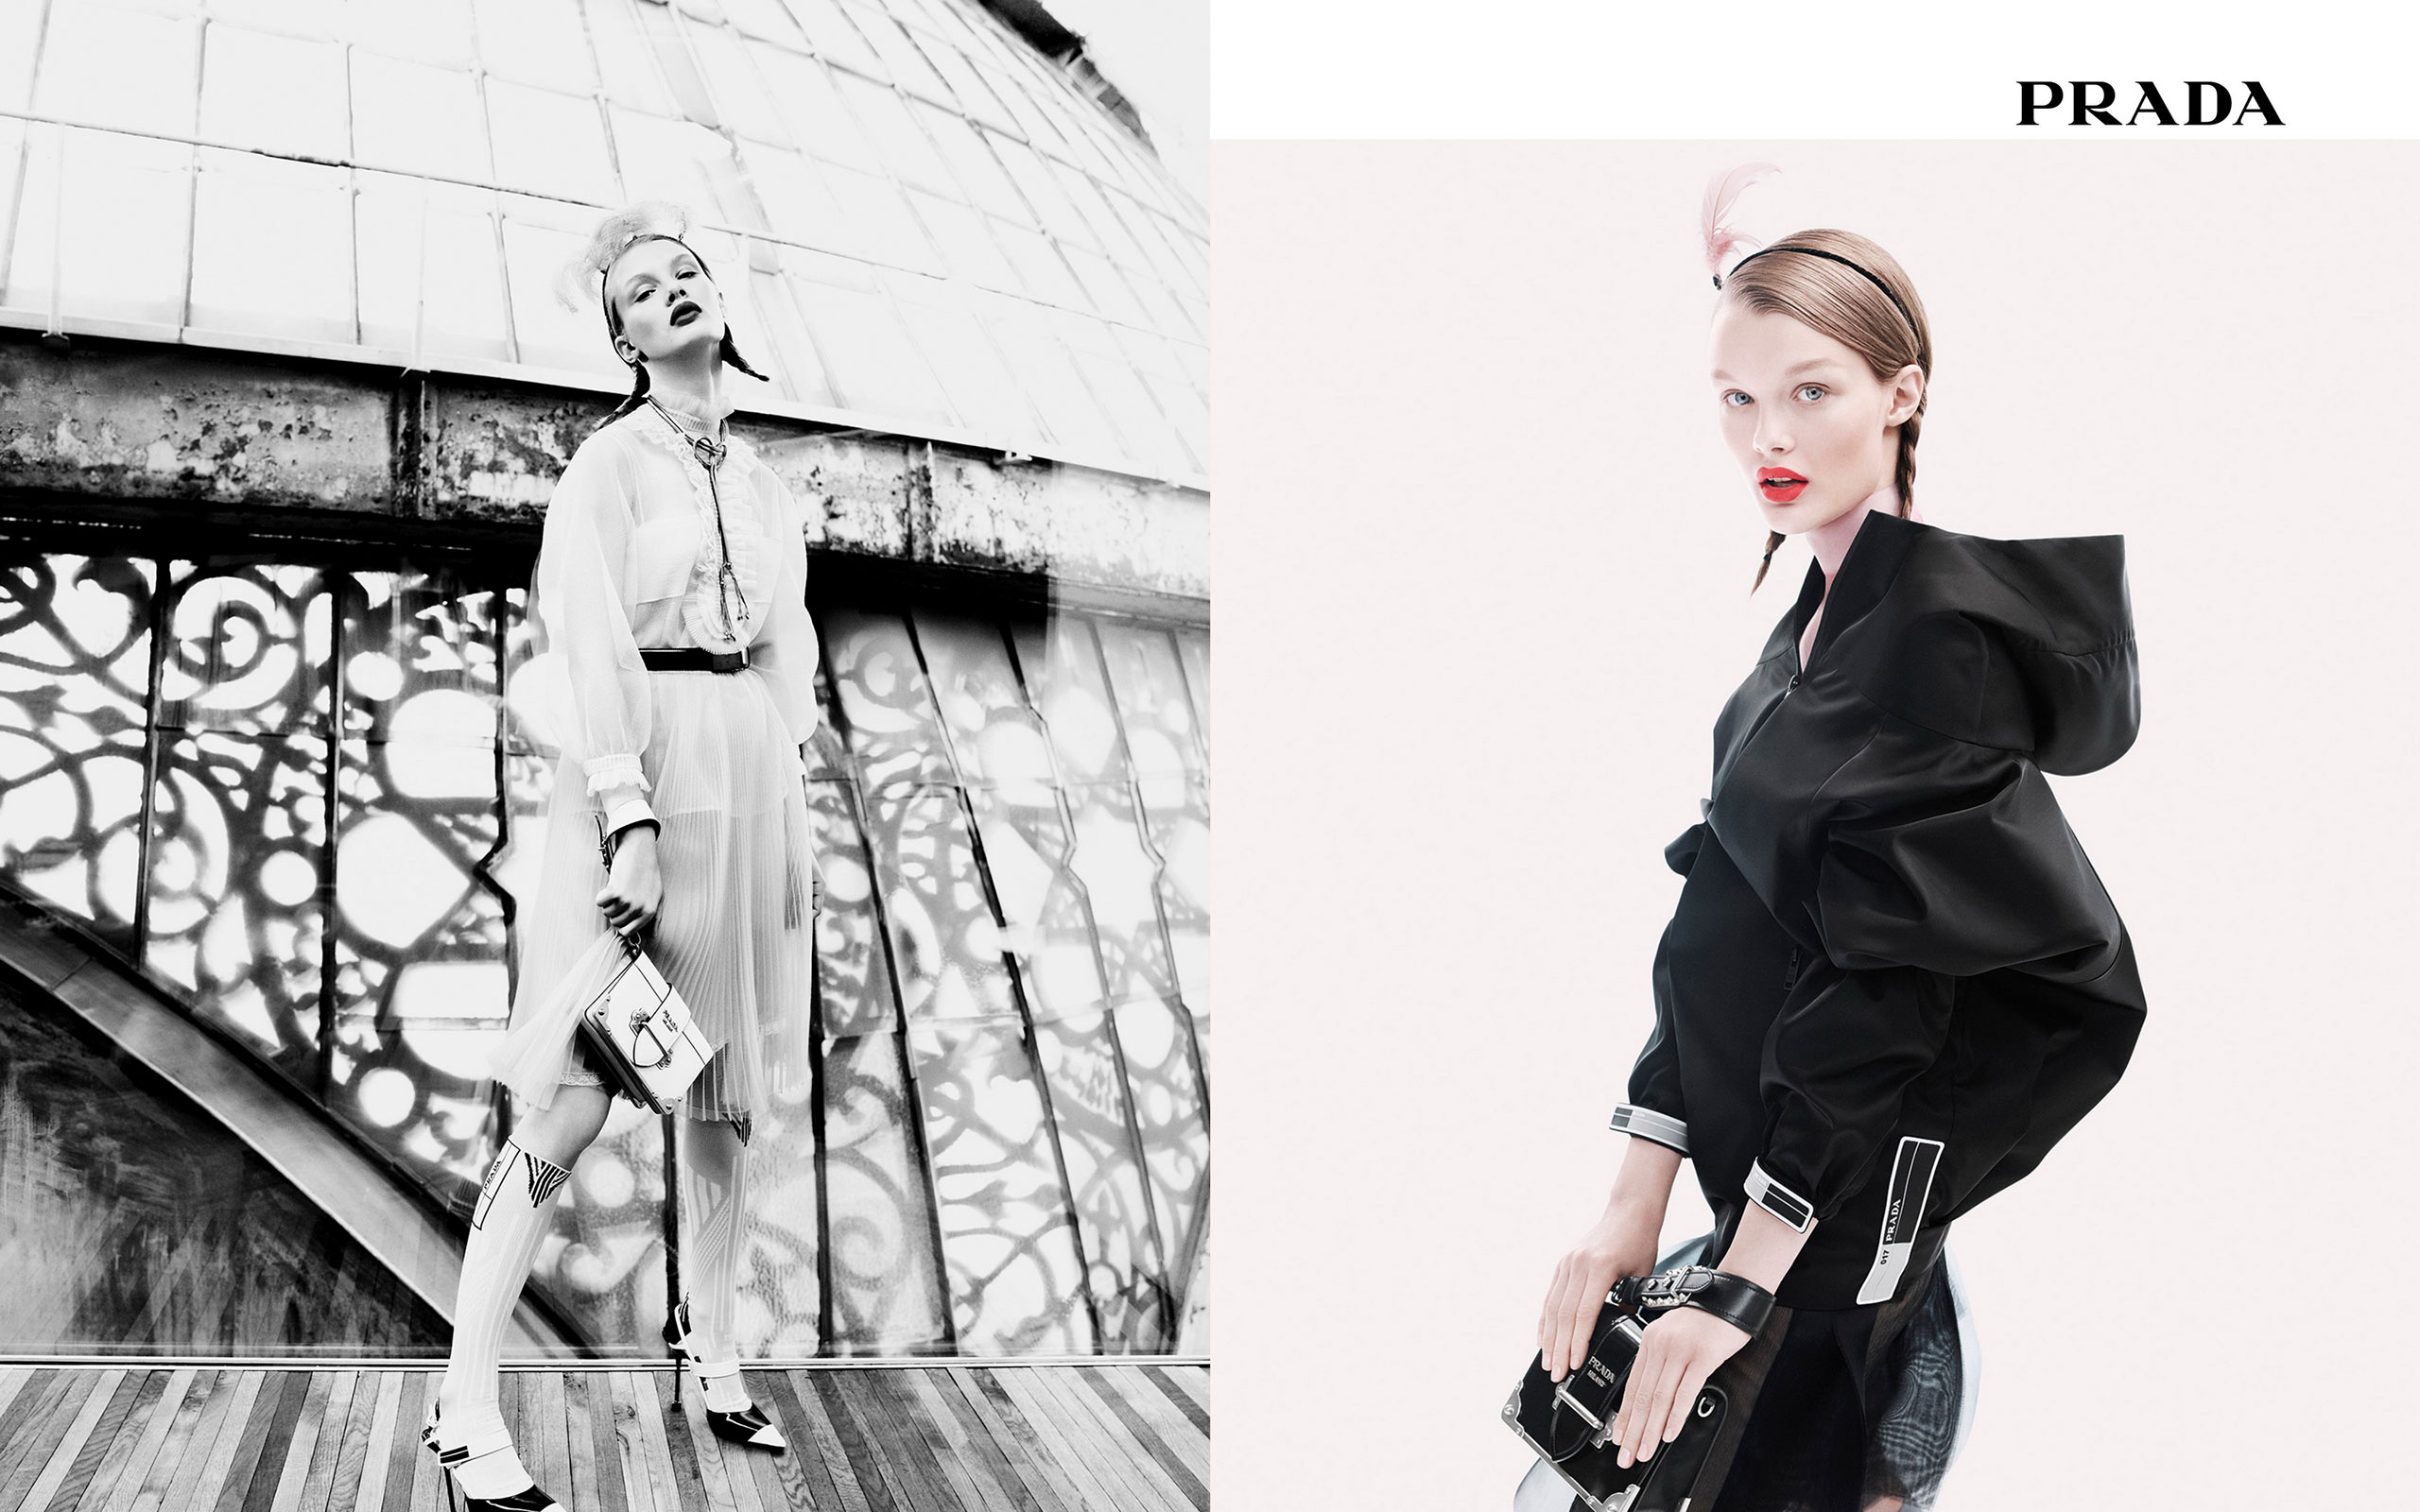 Prada Resort 2018 Advertising Campaign 'Perspectives' & 'Synthesis'